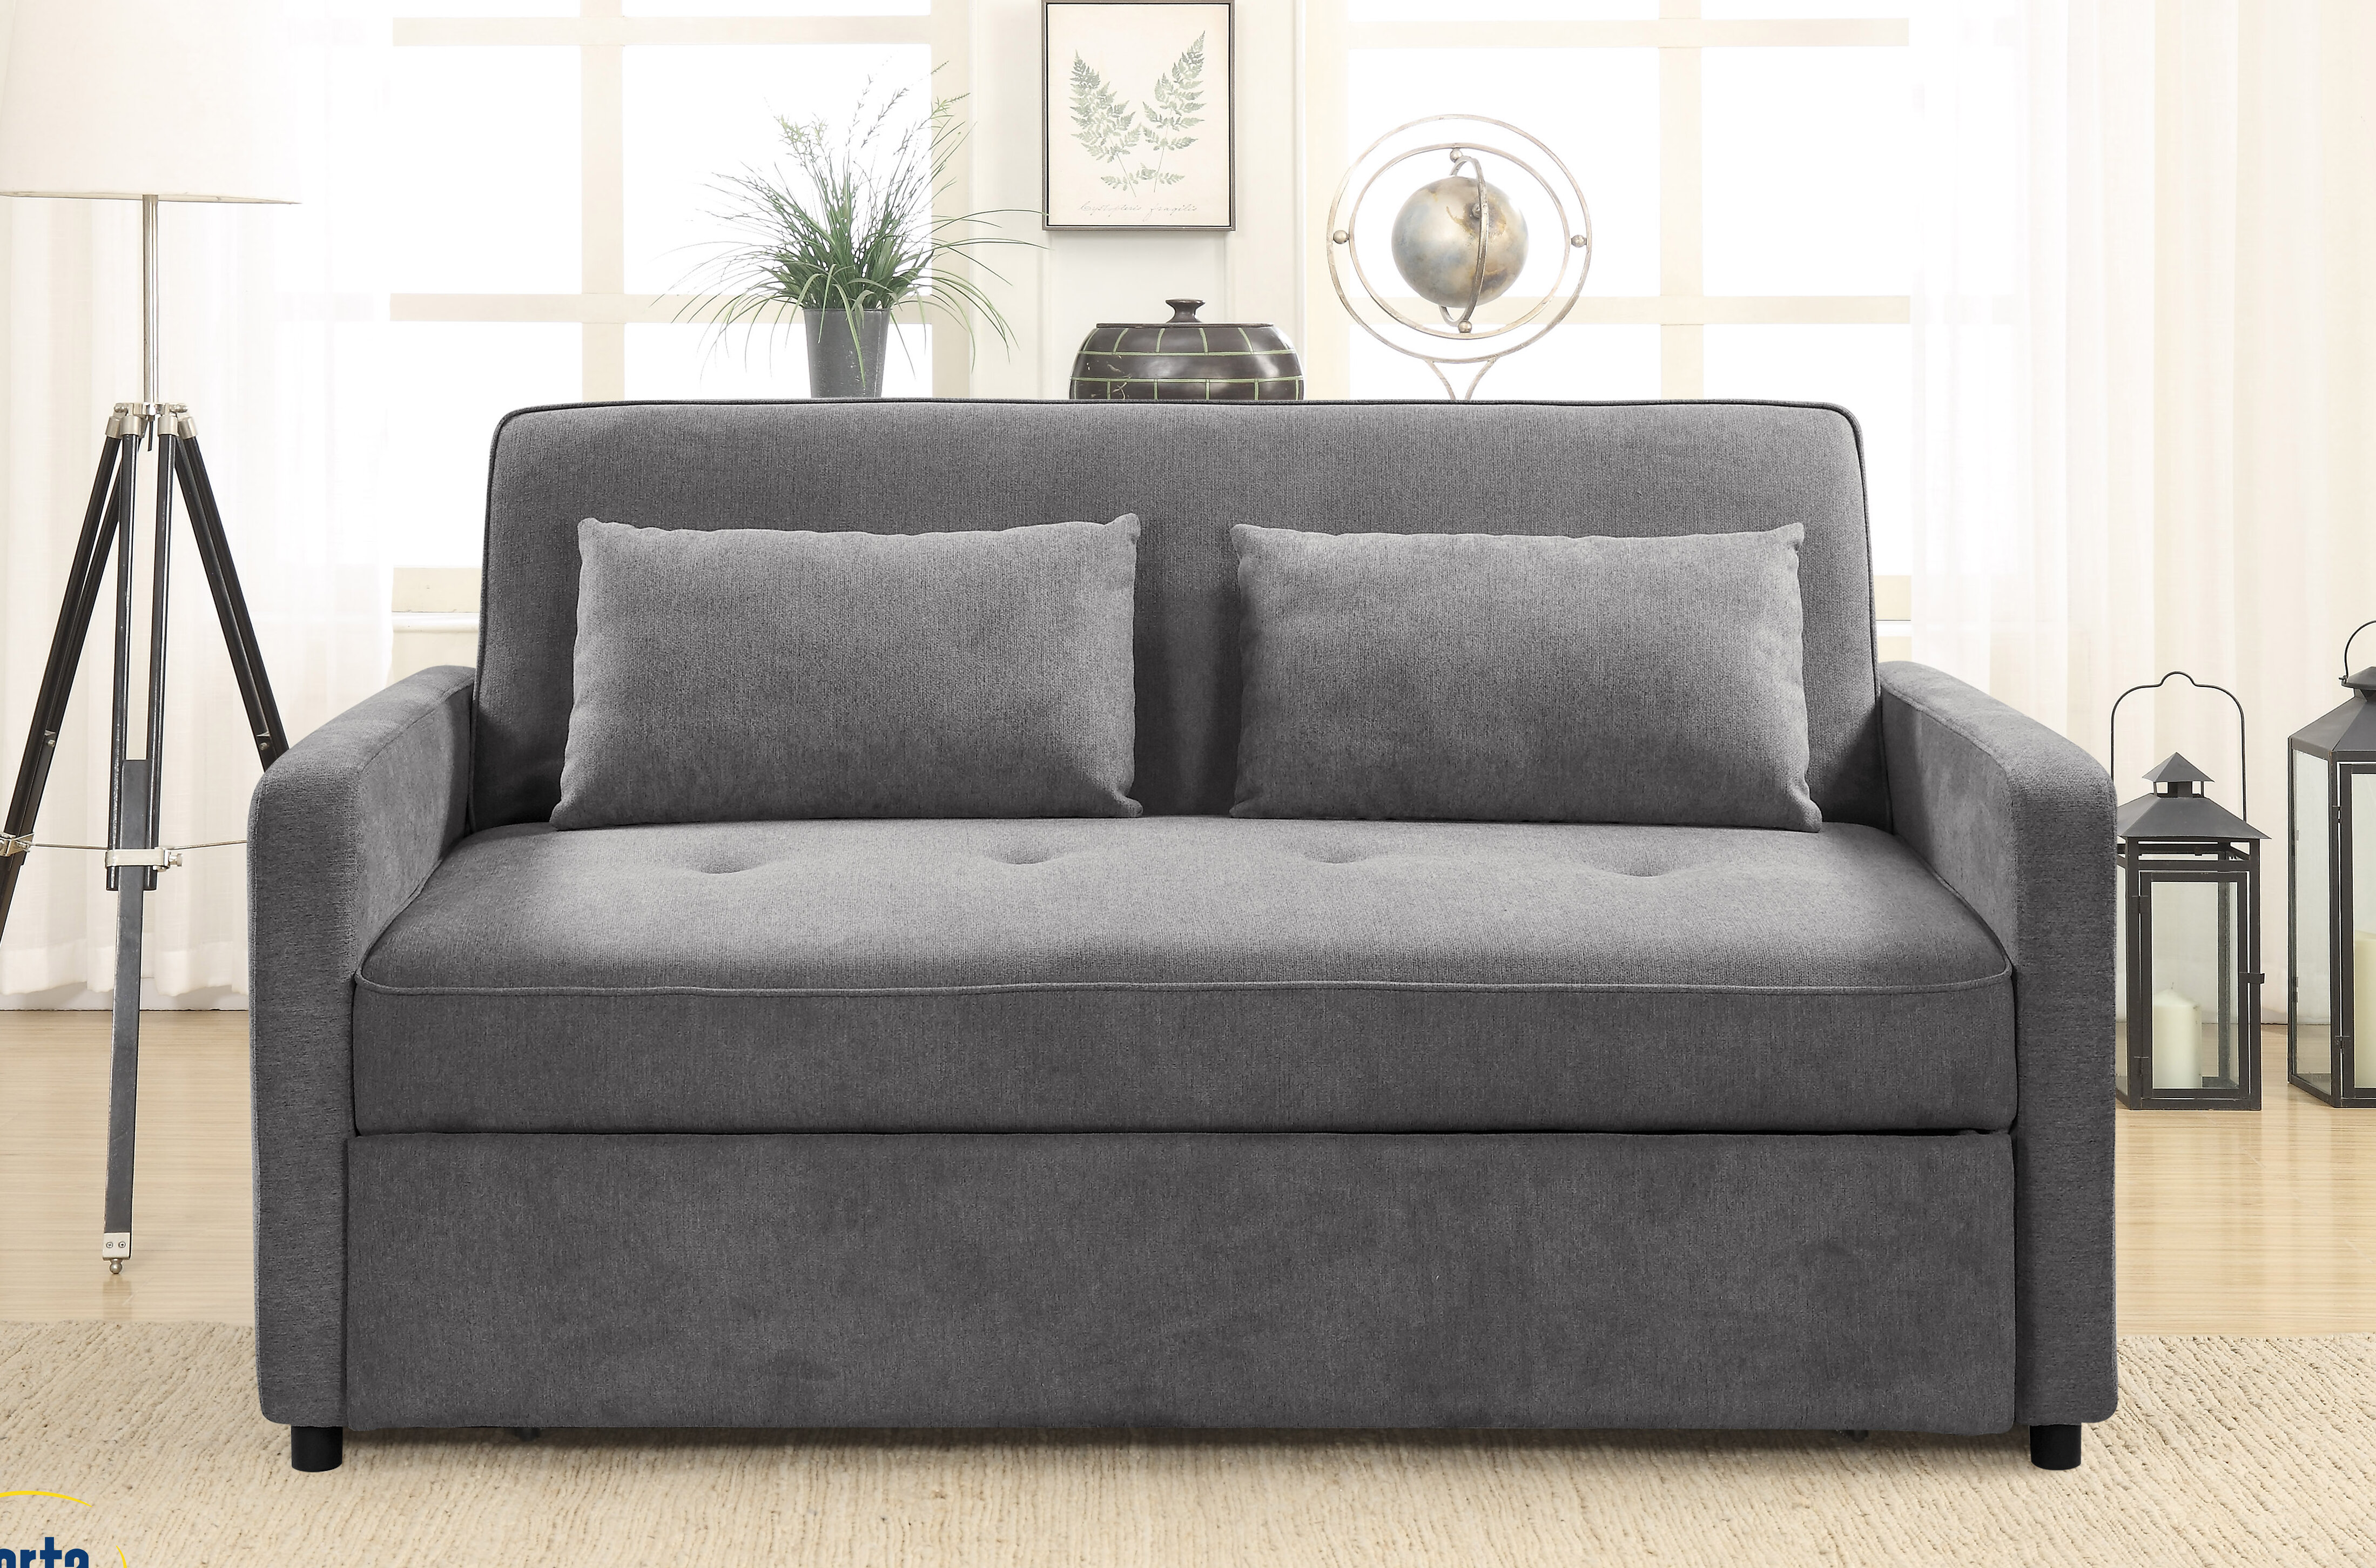 Faye Queen Tufted Back Convertible Sofa